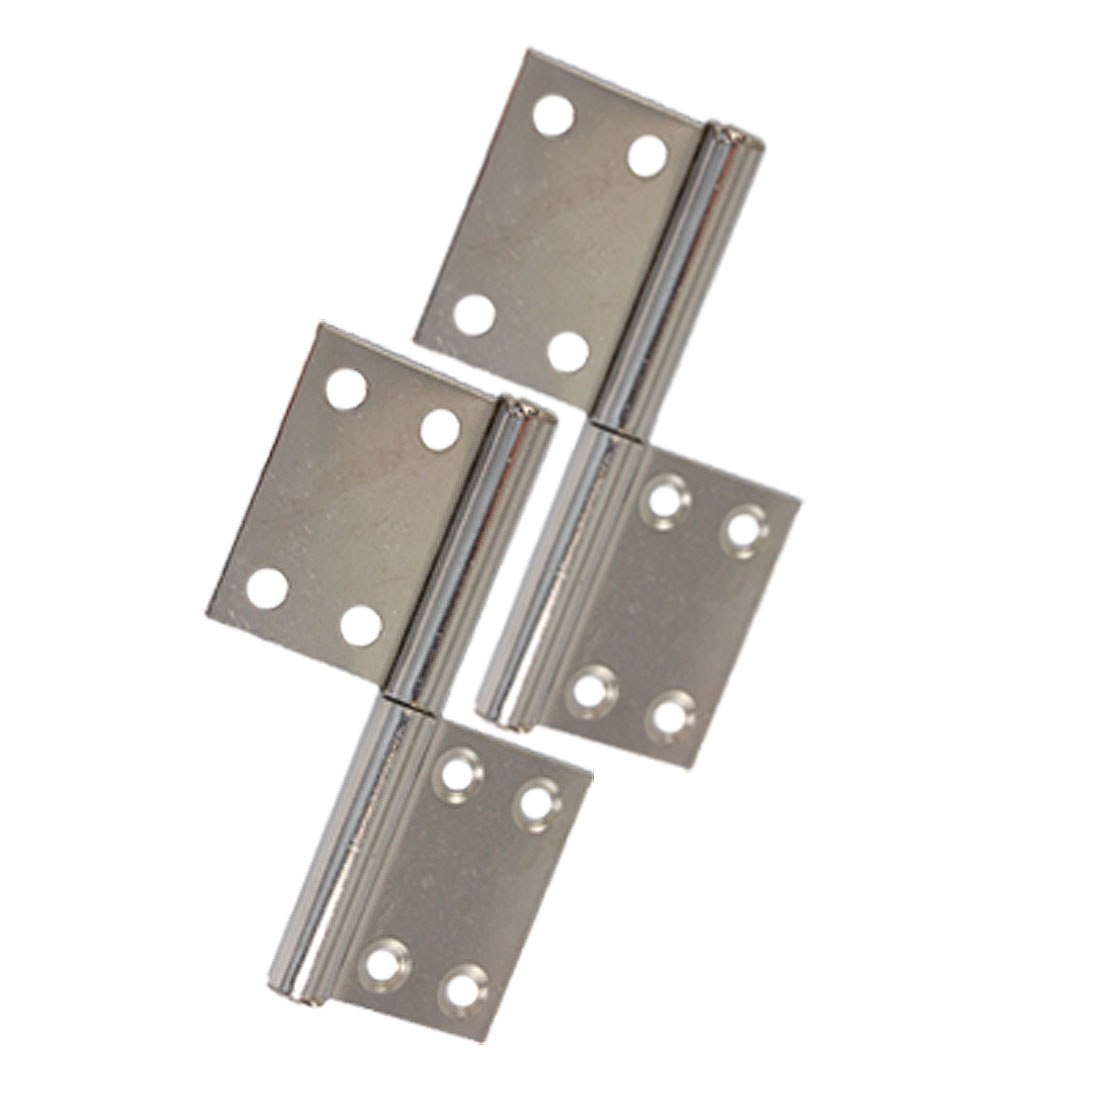 "Door Hardware Chrome Plated Metal 3.7"" Gates Flag Hinges 2 Pcs"